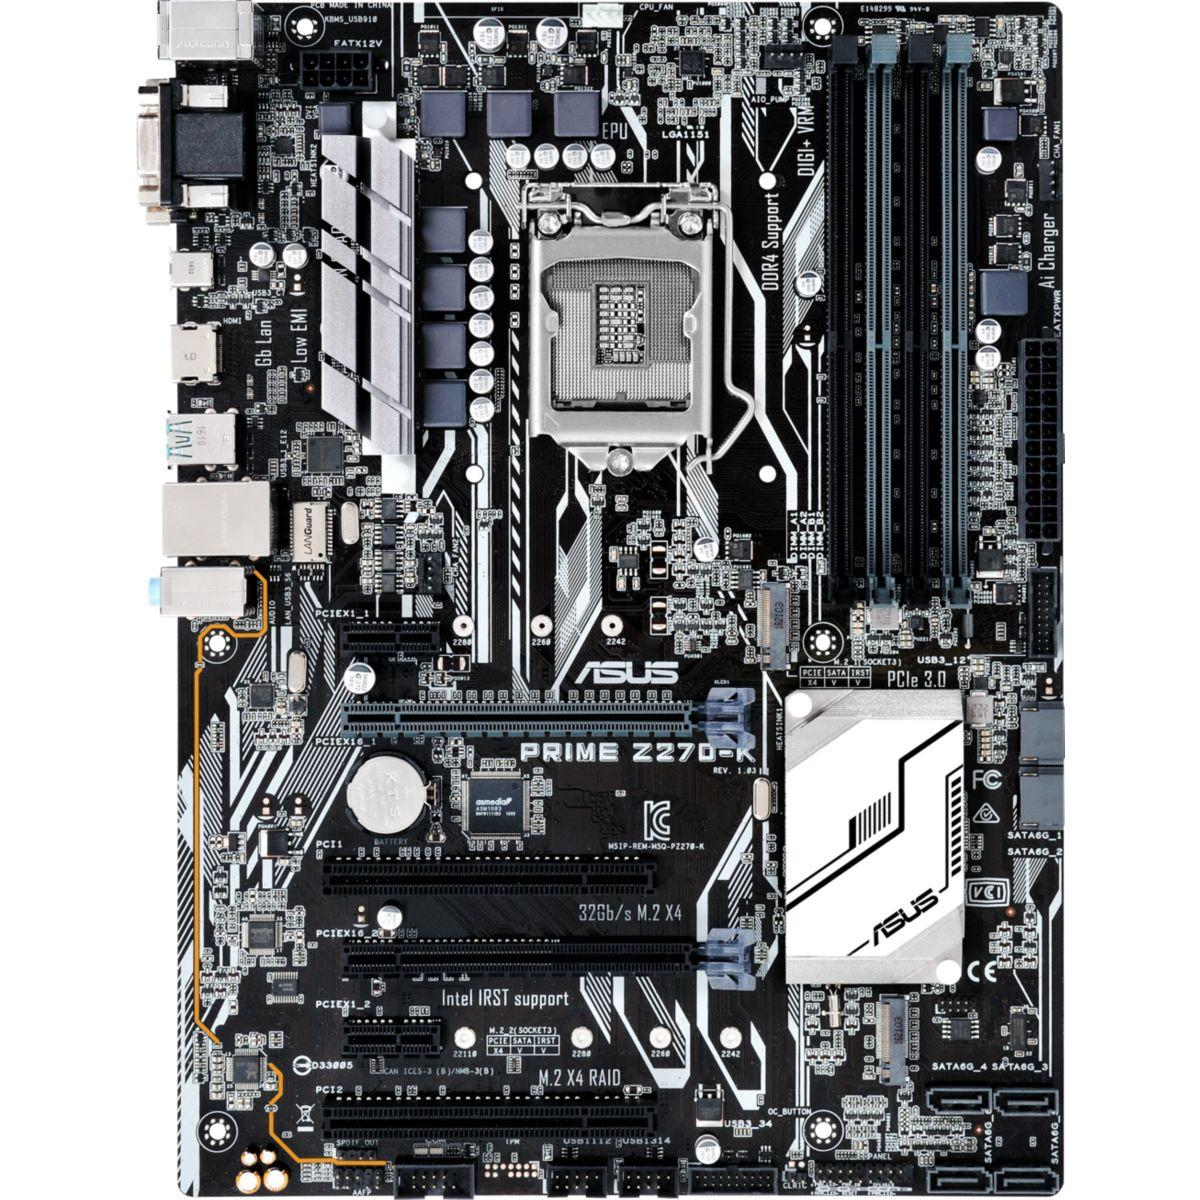 Carte m�re asus prime z270-k atx - 2% de remise imm�diate avec le code : fete2 (photo)